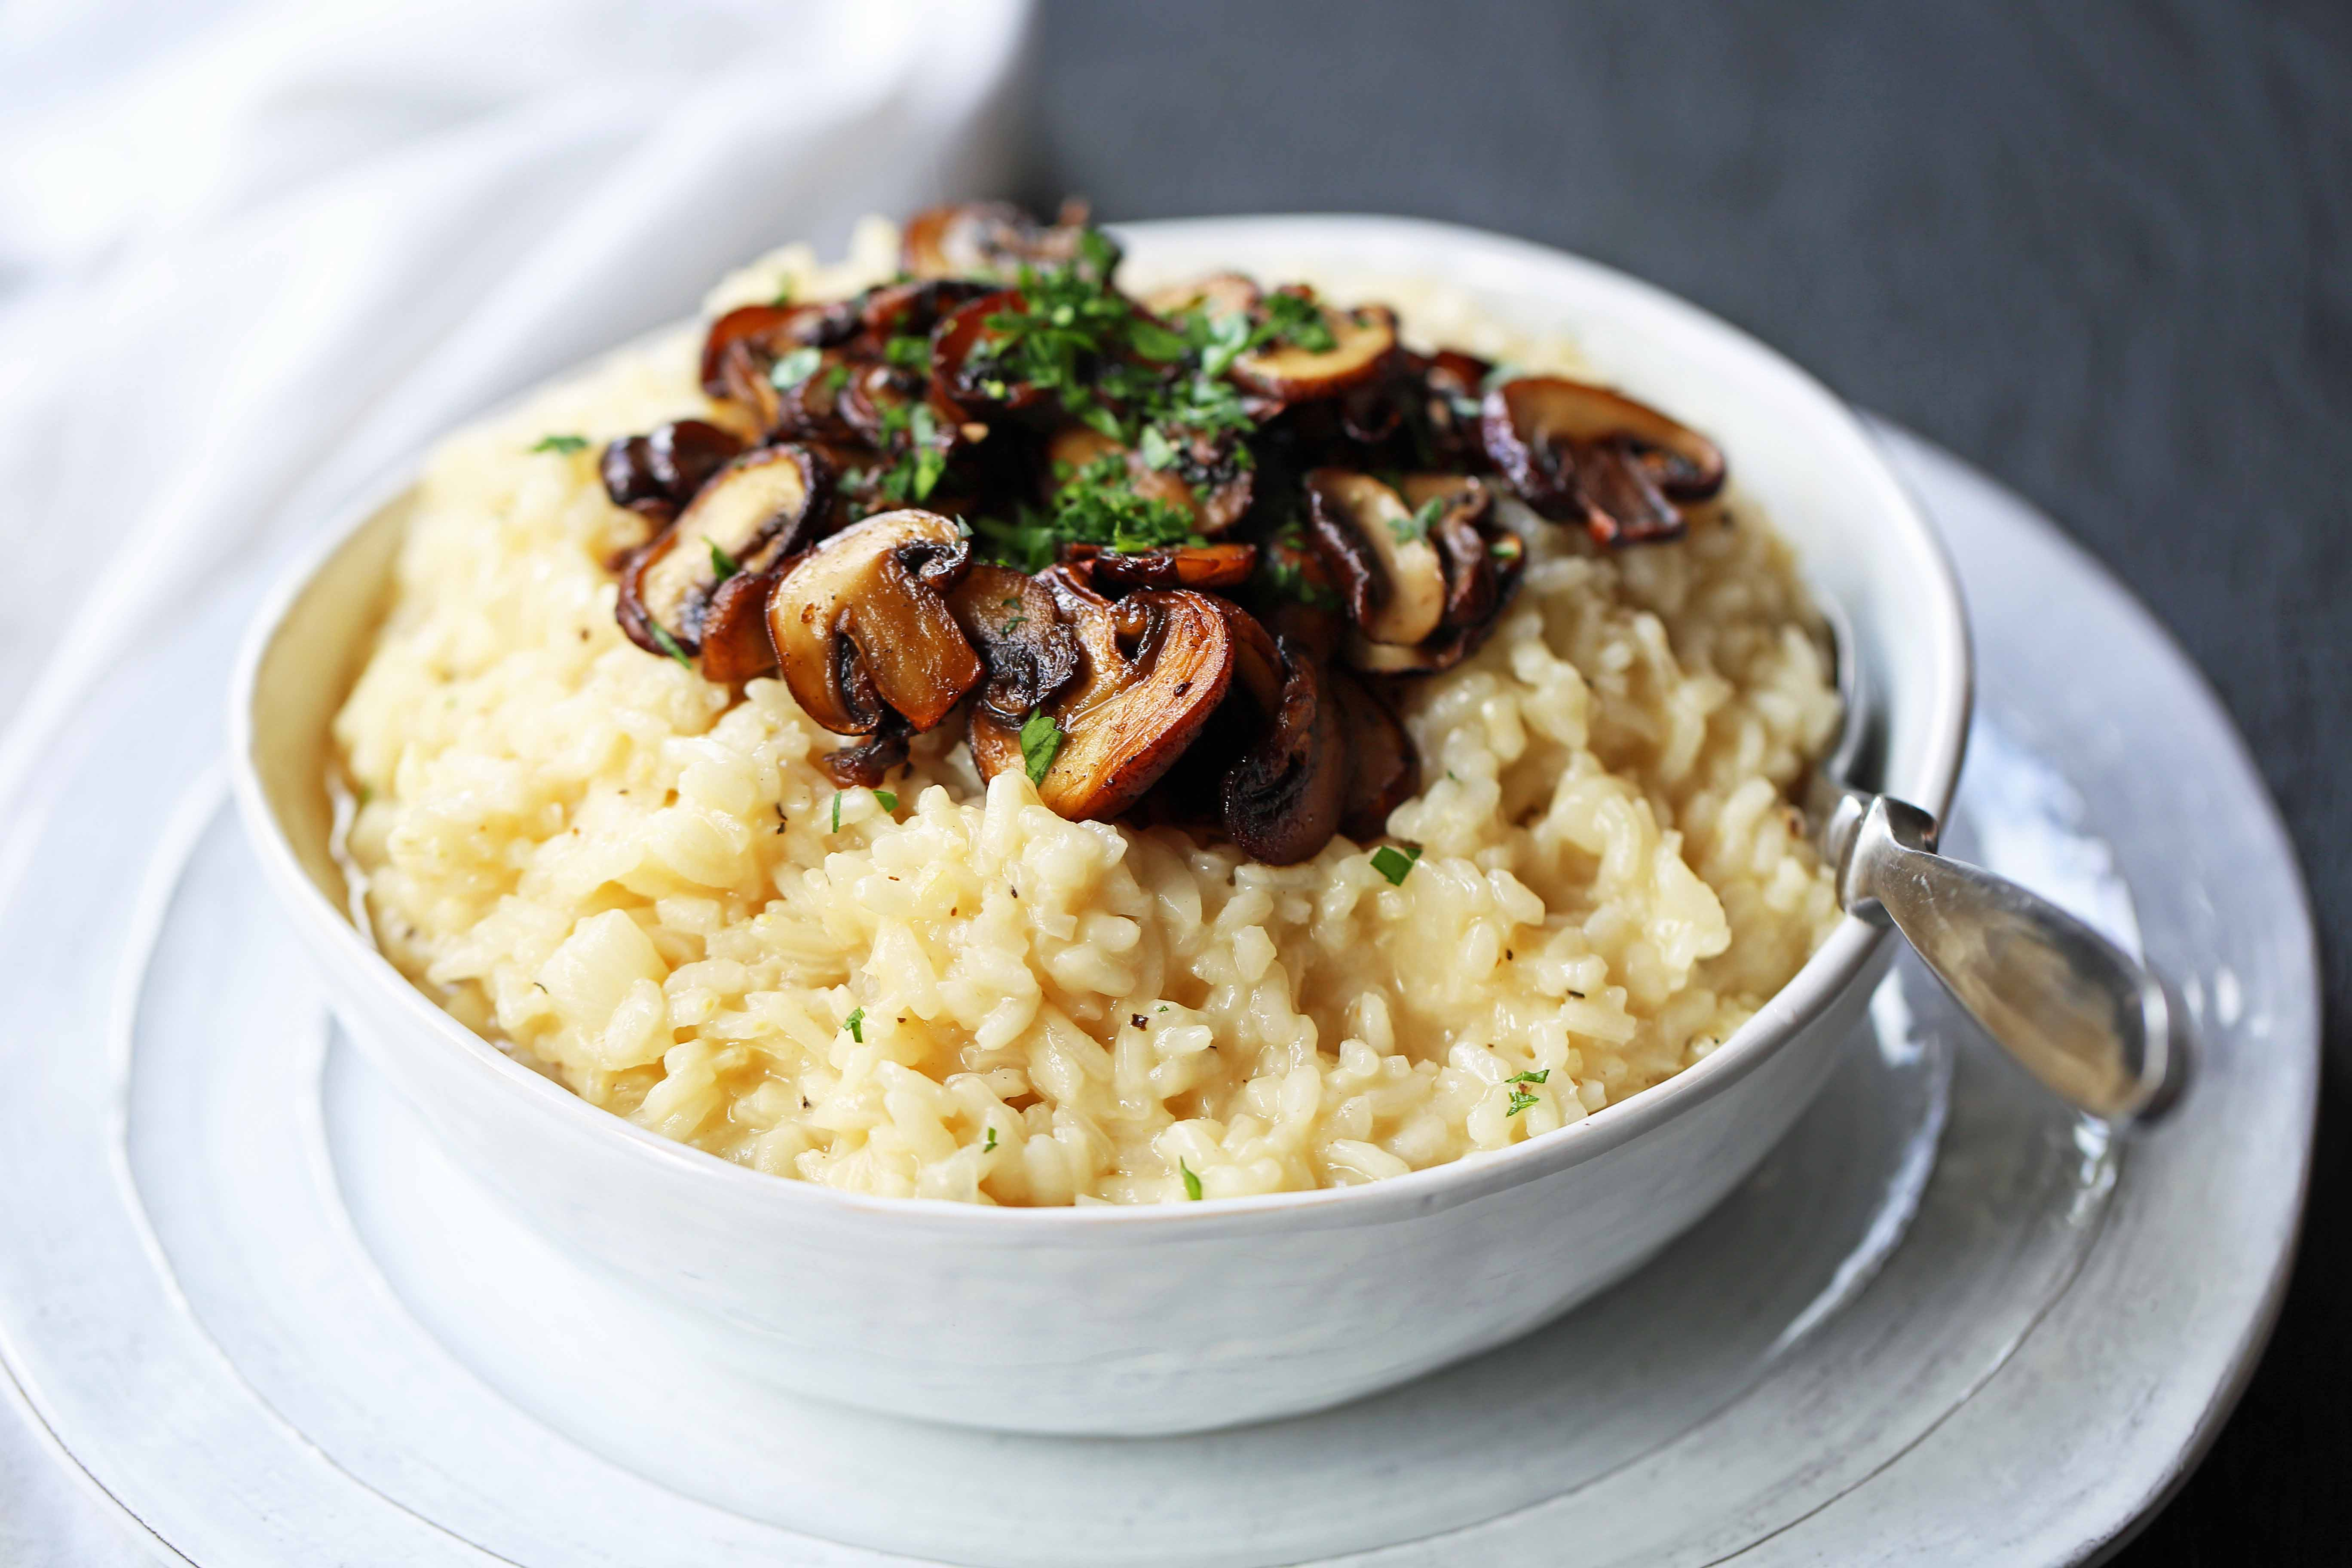 Creamy Mushroom Risotto. Rich, creamy rice slowly simmered with chicken broth, butter, parmesan cheese, and topped with butter sauteed mushrooms. www.modernhoney.com #risotto #homemaderisotto #mushroomrisotto